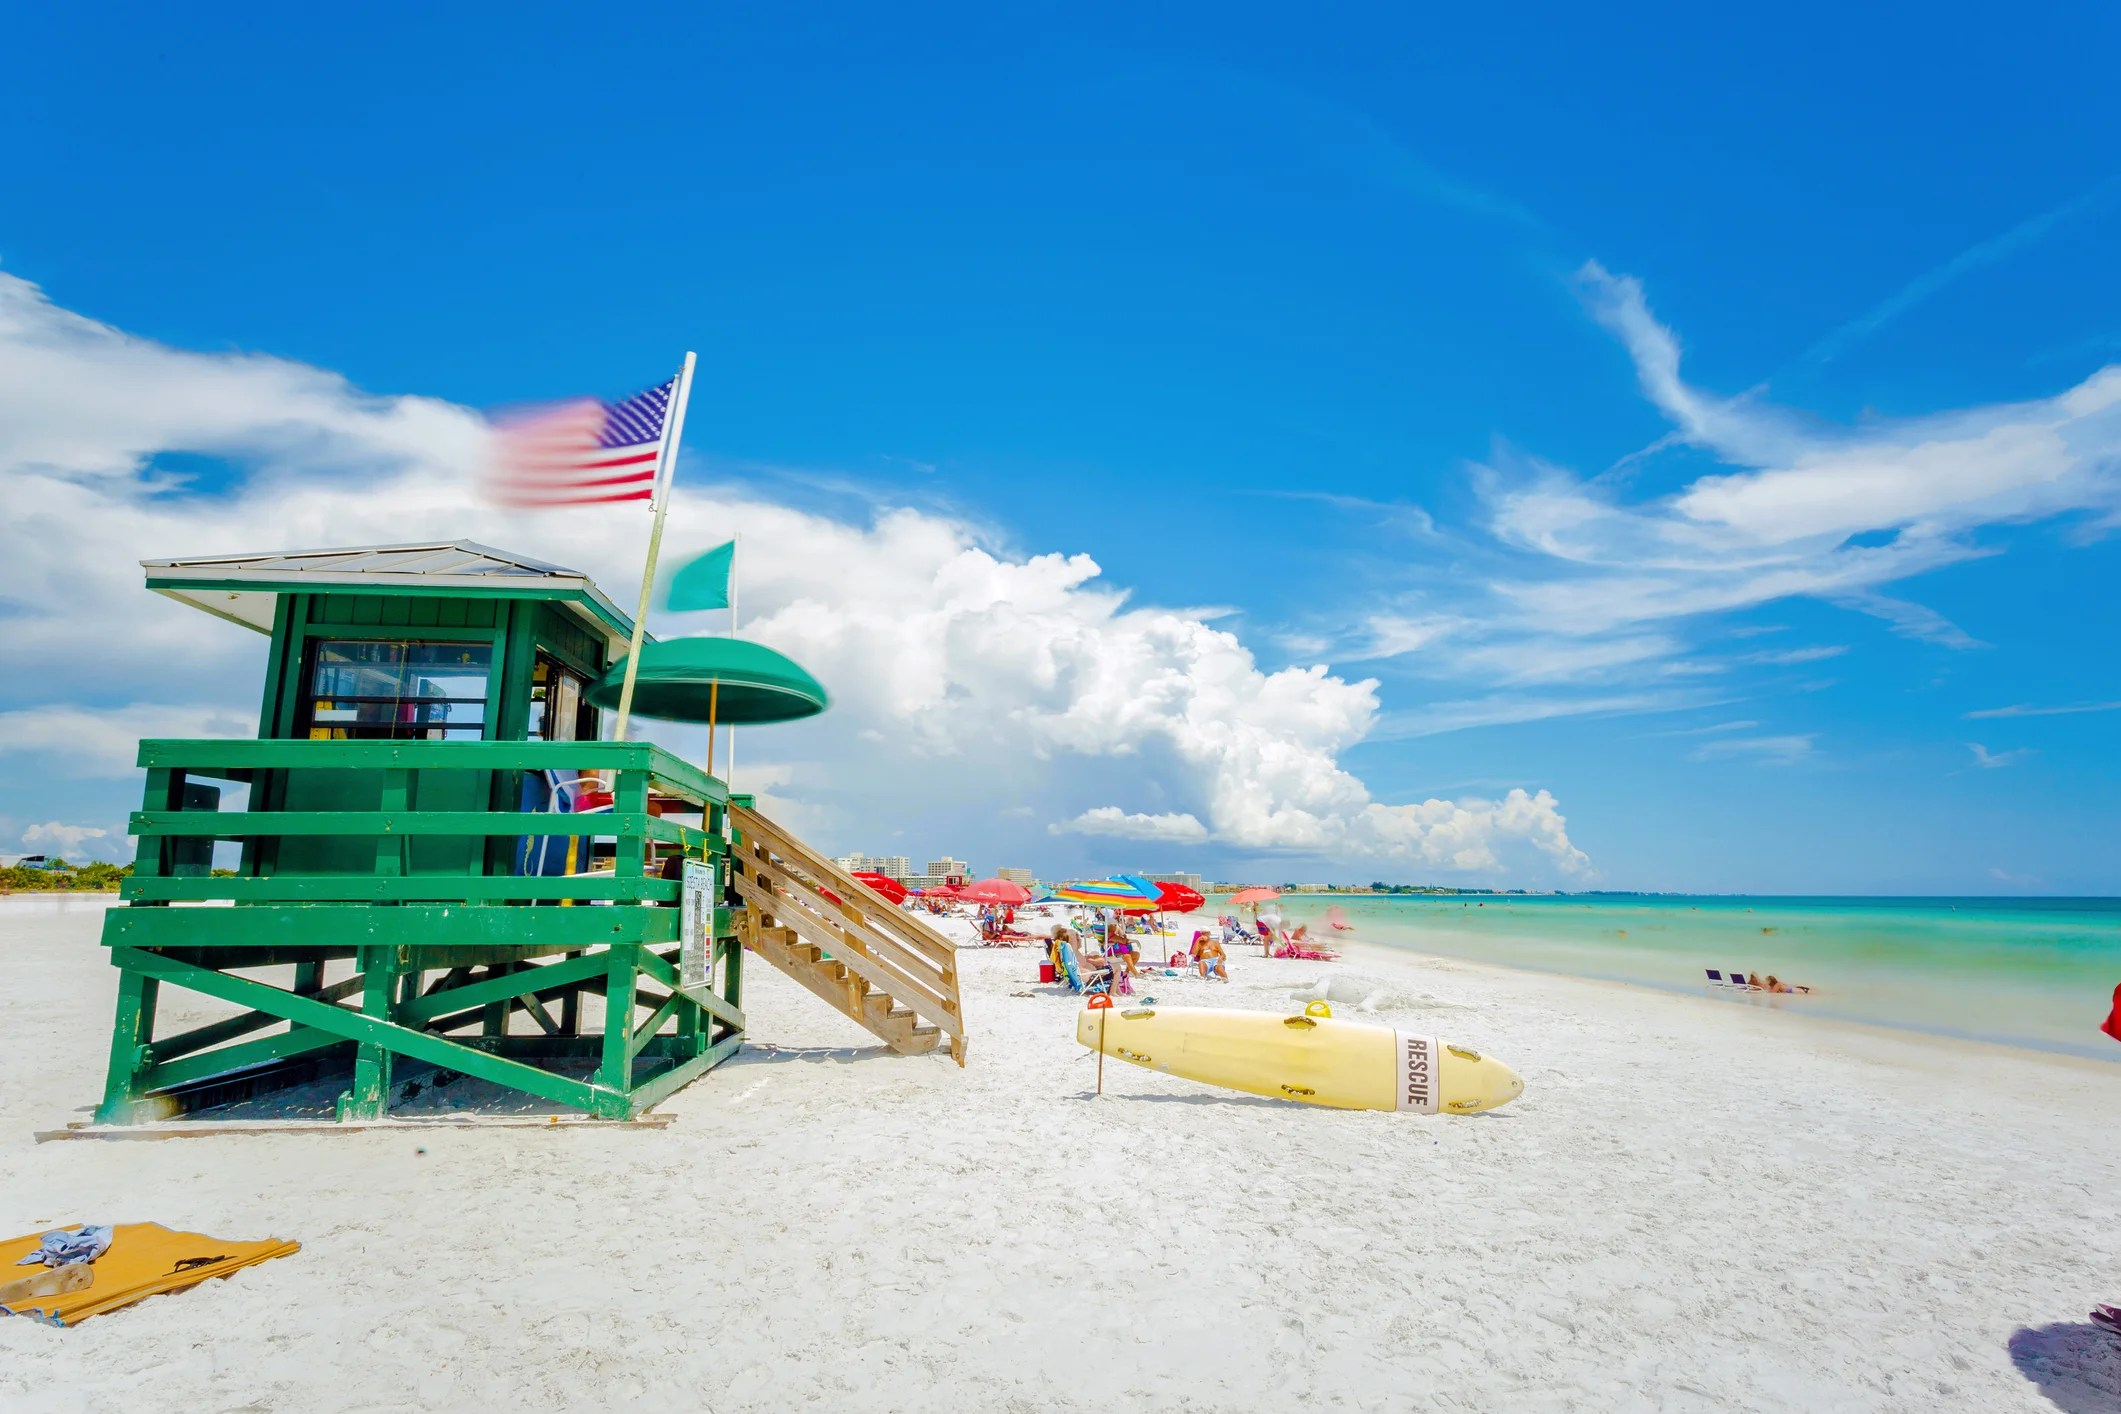 TPG's Insider Guide: Planning A Winter Trip To Florida